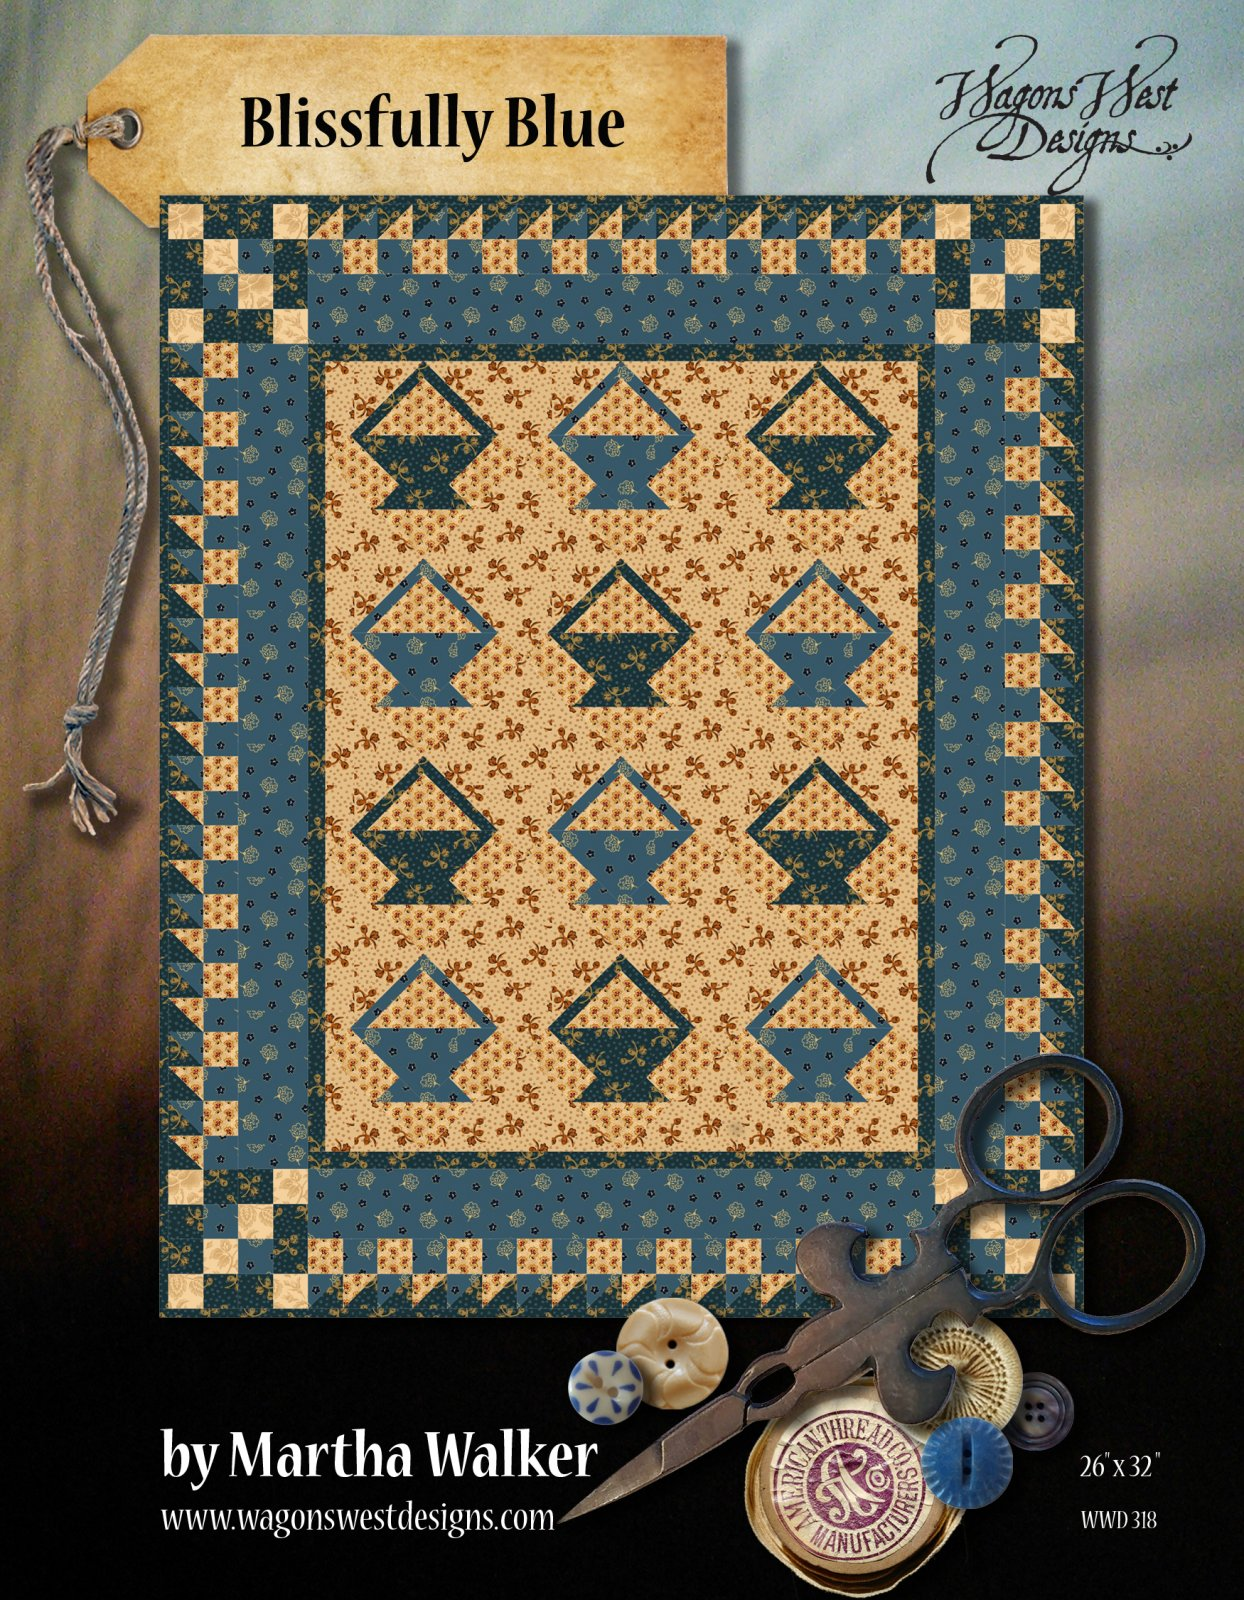 Blissfully Blue E pattern